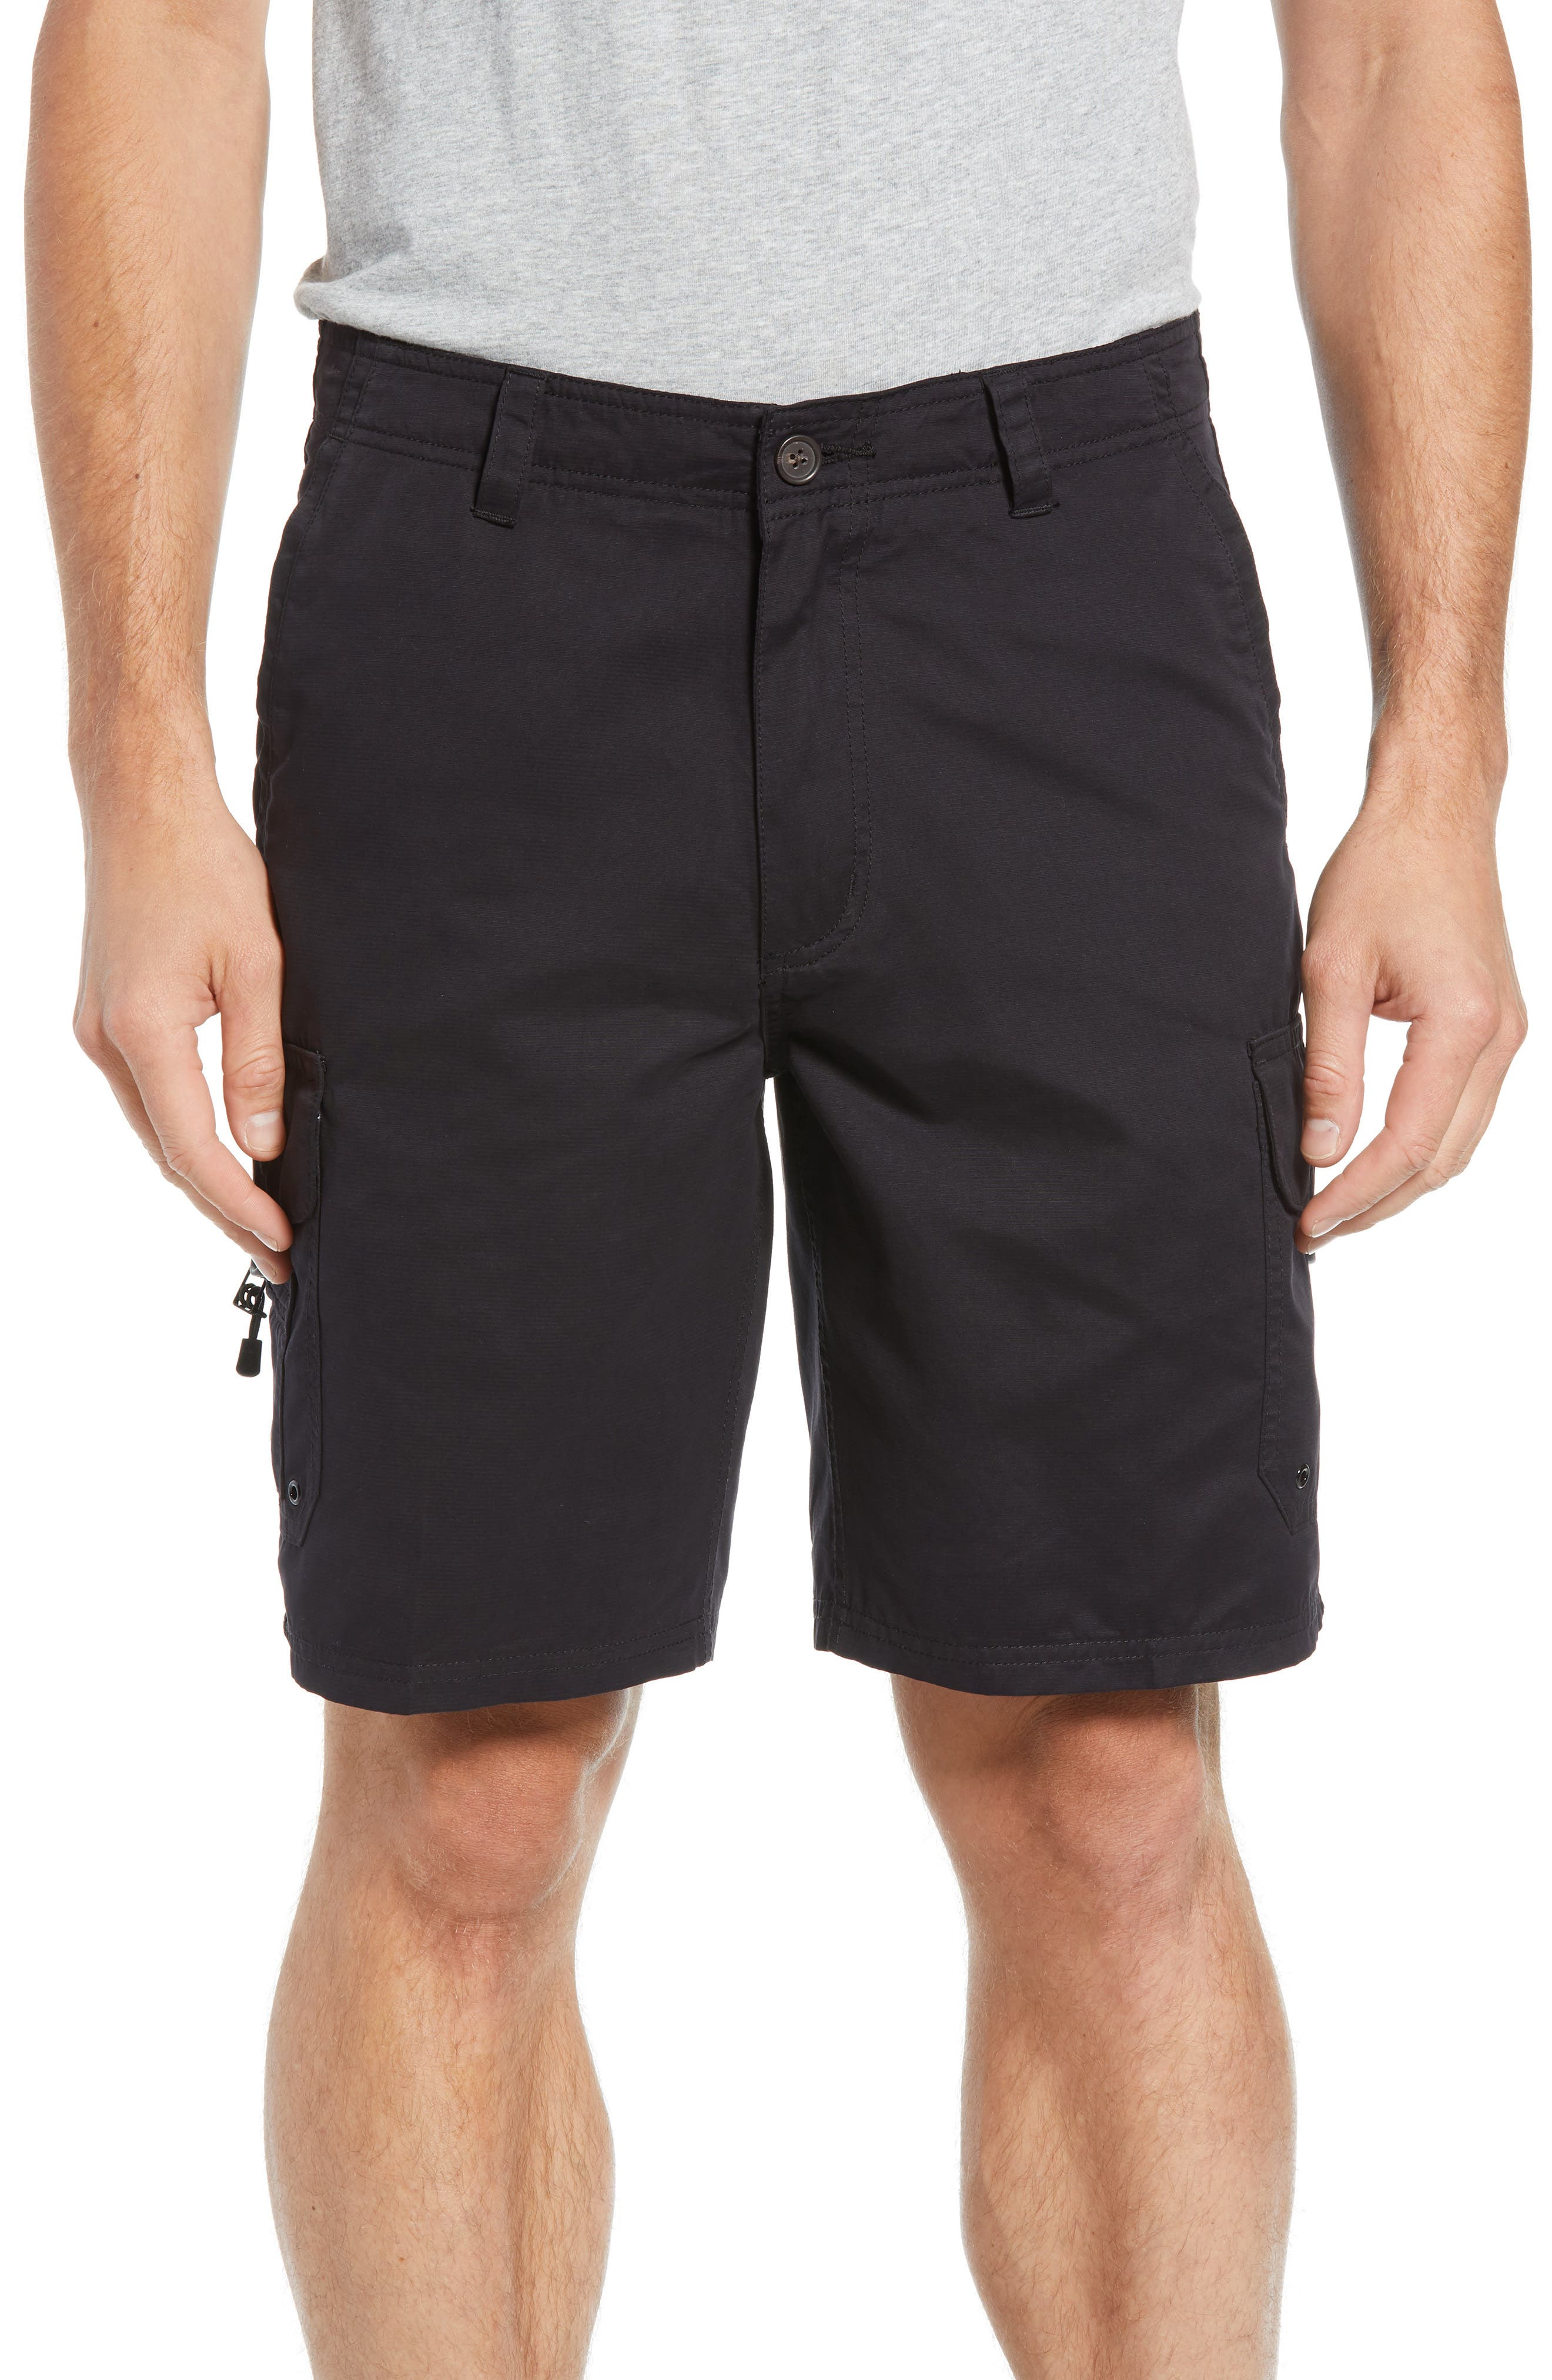 Quiksilver Waterman Collection Maldive Regular Fit Cargo Shorts, Black